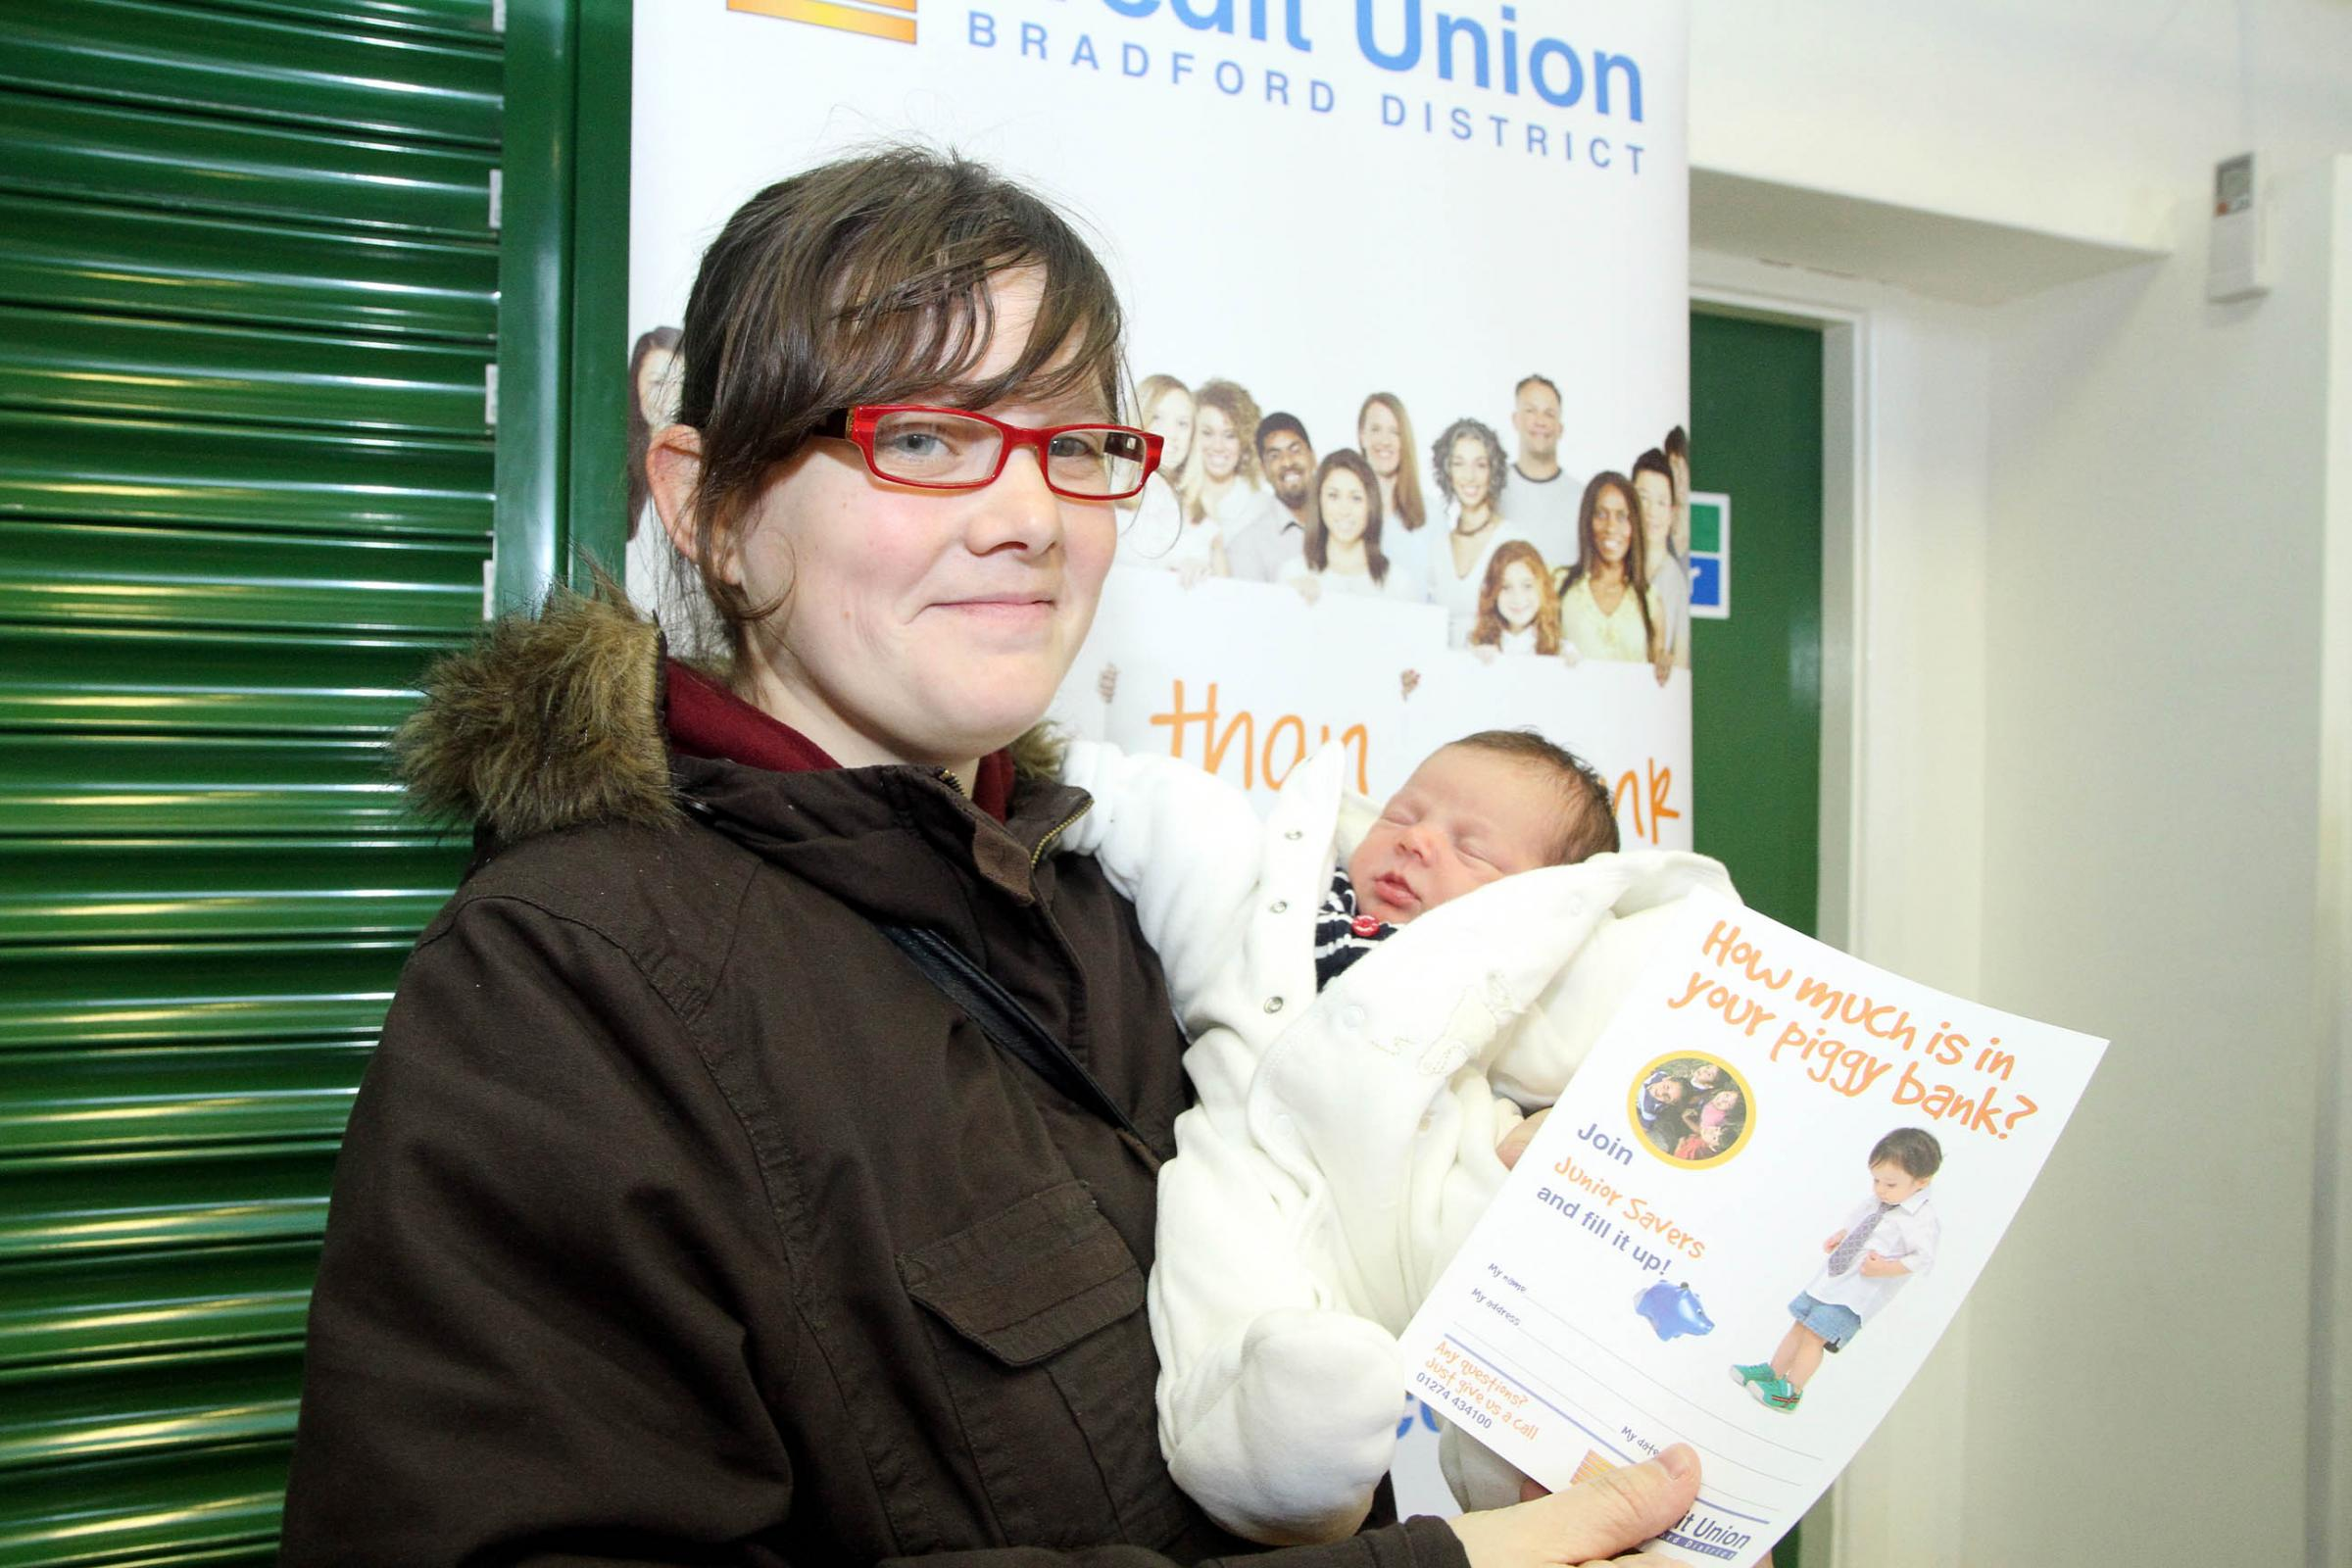 Our Lady of Victories Primary School parent, Michelle Wright, signed up her daughter, Aimee Louise Foulds, who aged just one week is the youngest credit union member